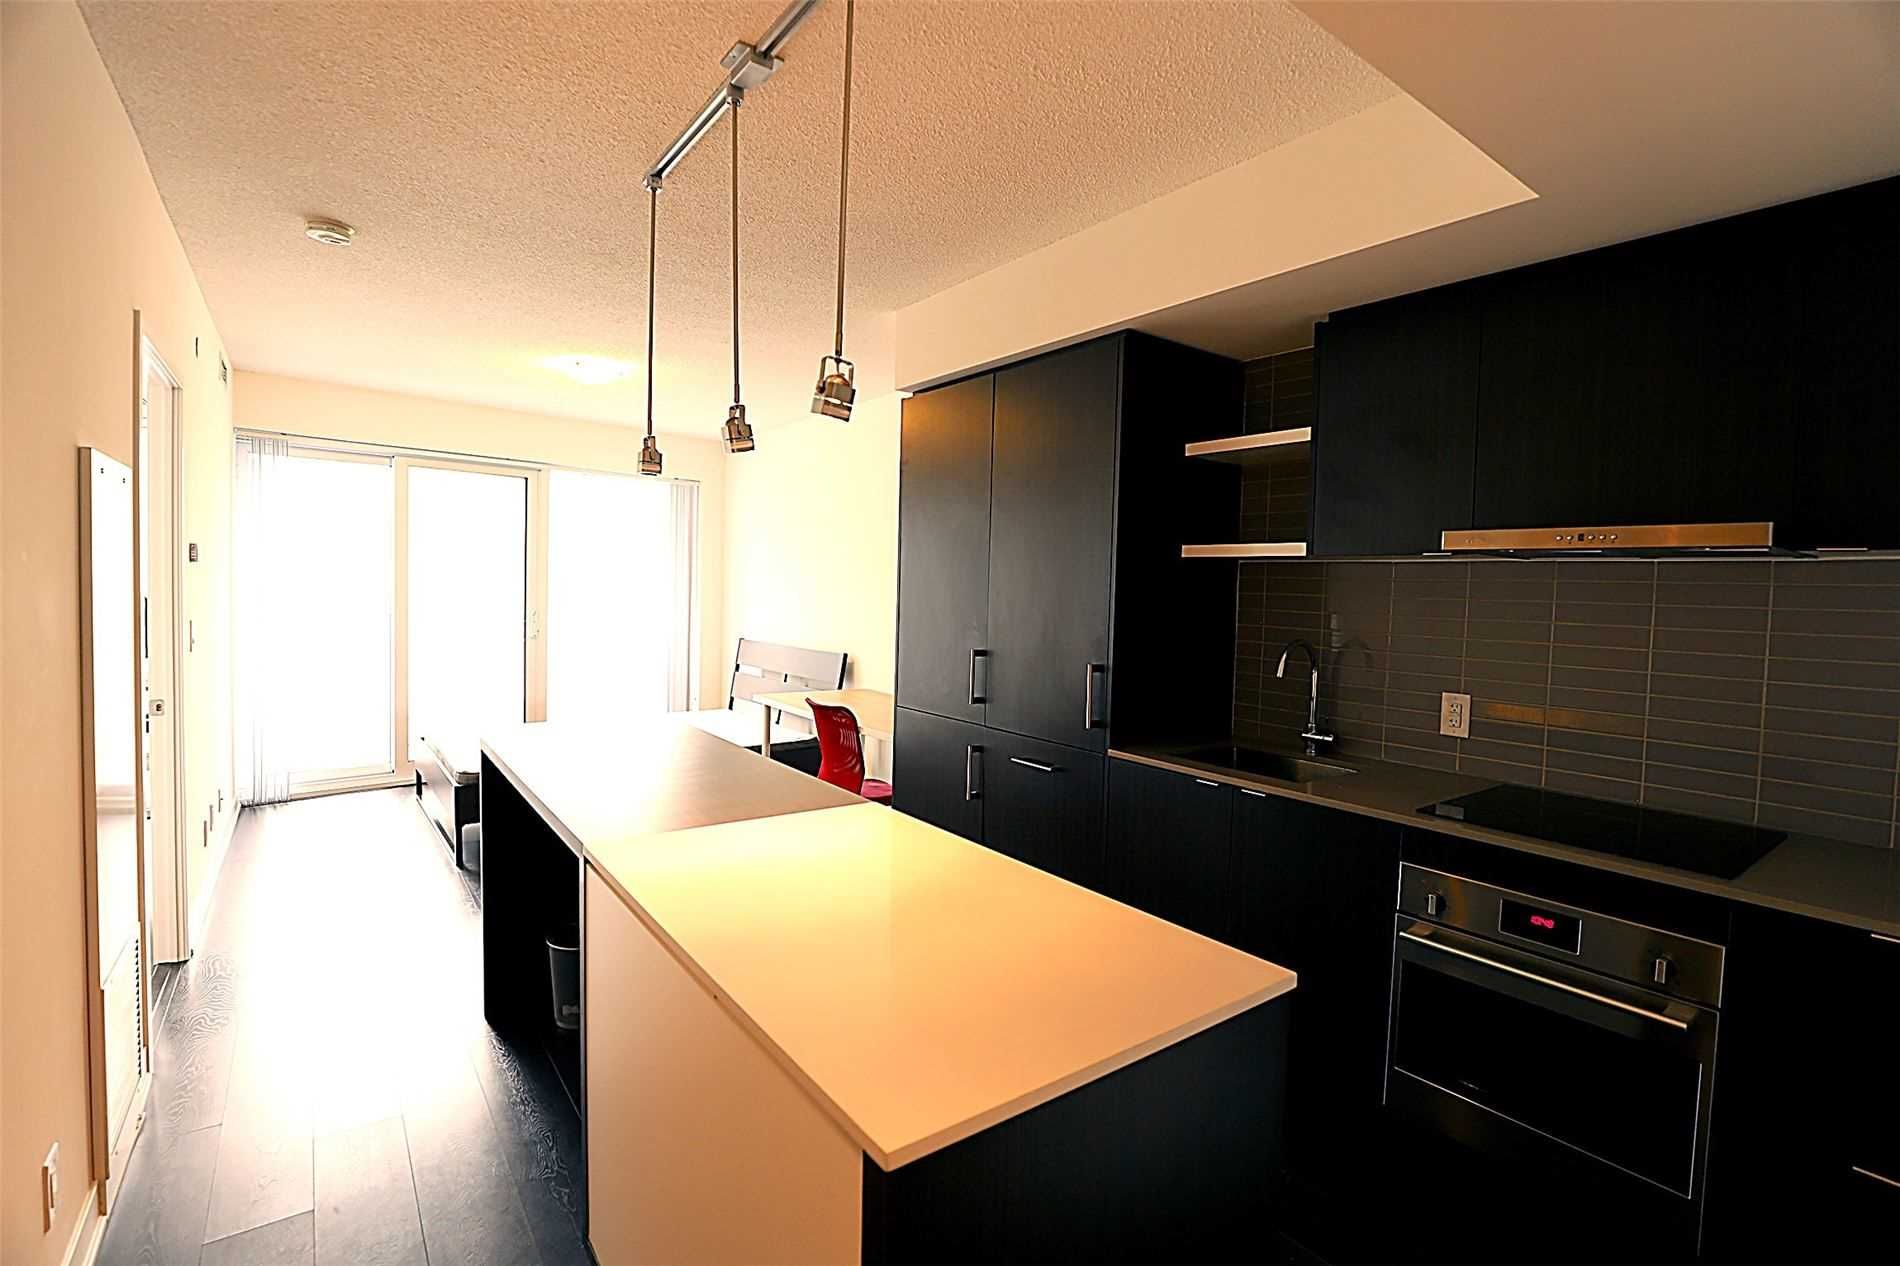 88 Harbour St, unit 2003 for rent in Toronto - image #2